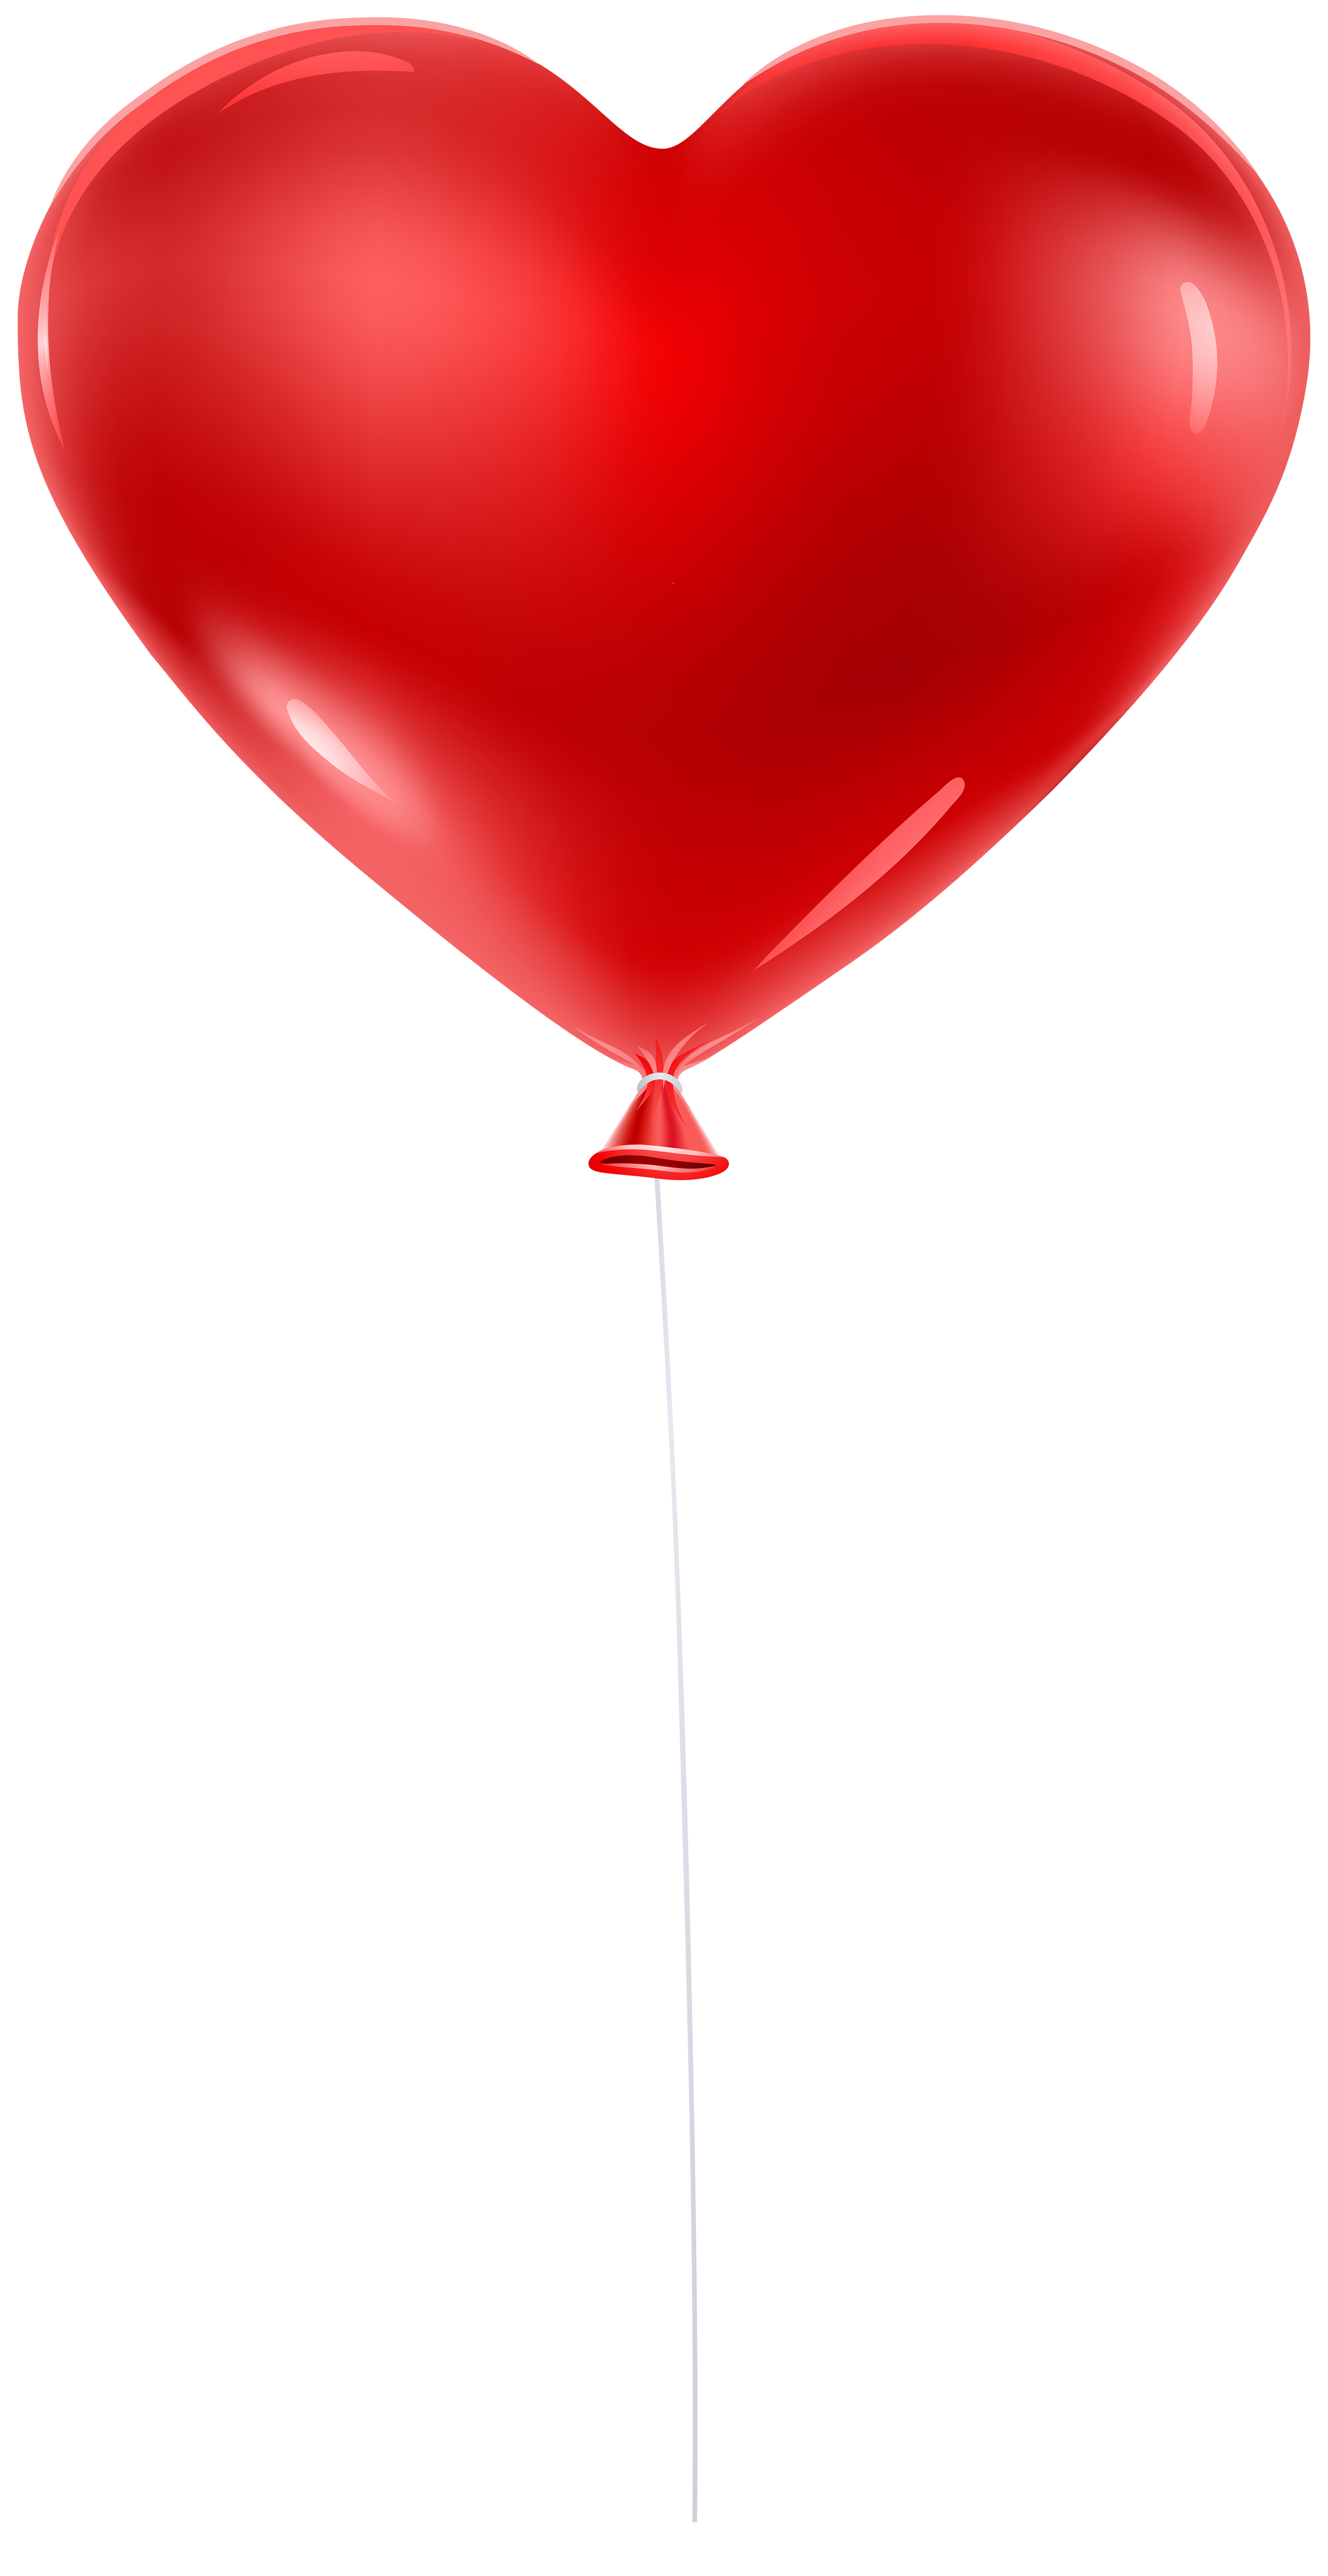 Red clipart heart graphic transparent library Red Balloon Heart Transparent Clip Art | Gallery Yopriceville ... graphic transparent library